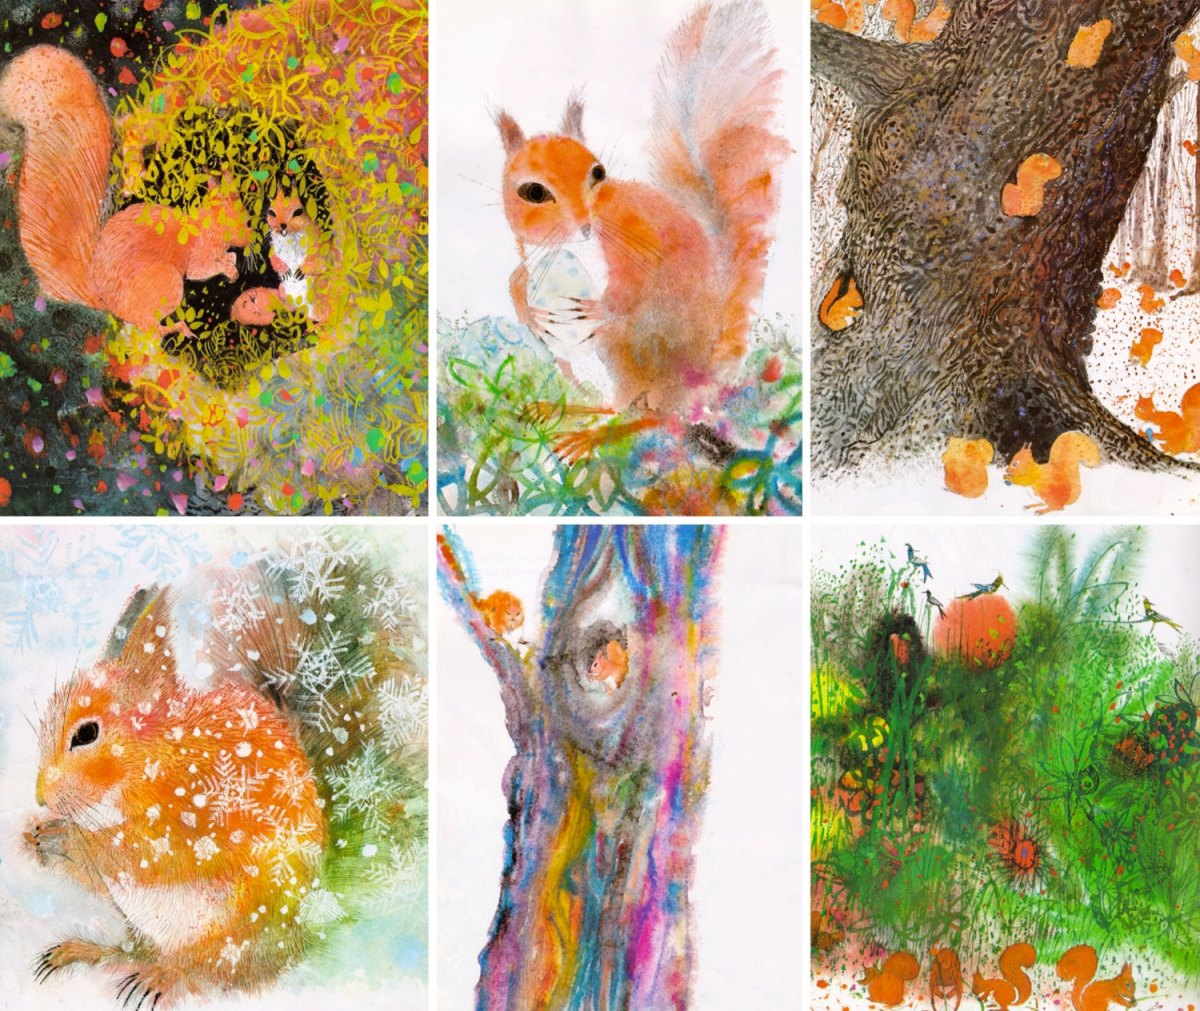 images from Squirrels by Brian Wildsmith